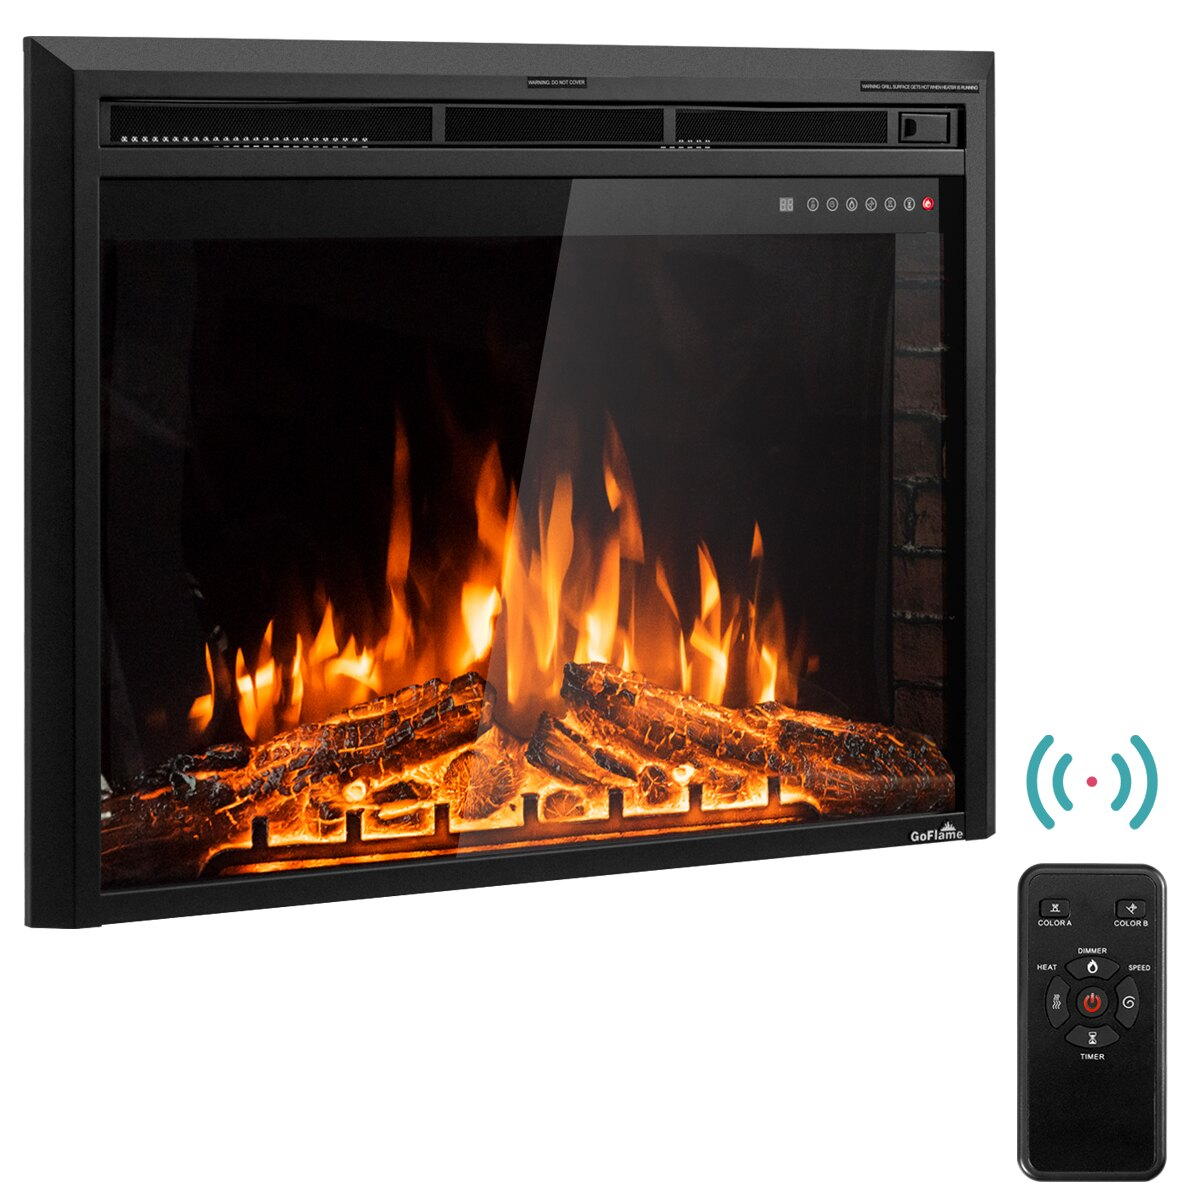 Electric Heaters that Look Like Fireplaces Inspirational Goflame 36 750w 1500w Fireplace Heater Electric Embedded Insert Timer Flame Remote